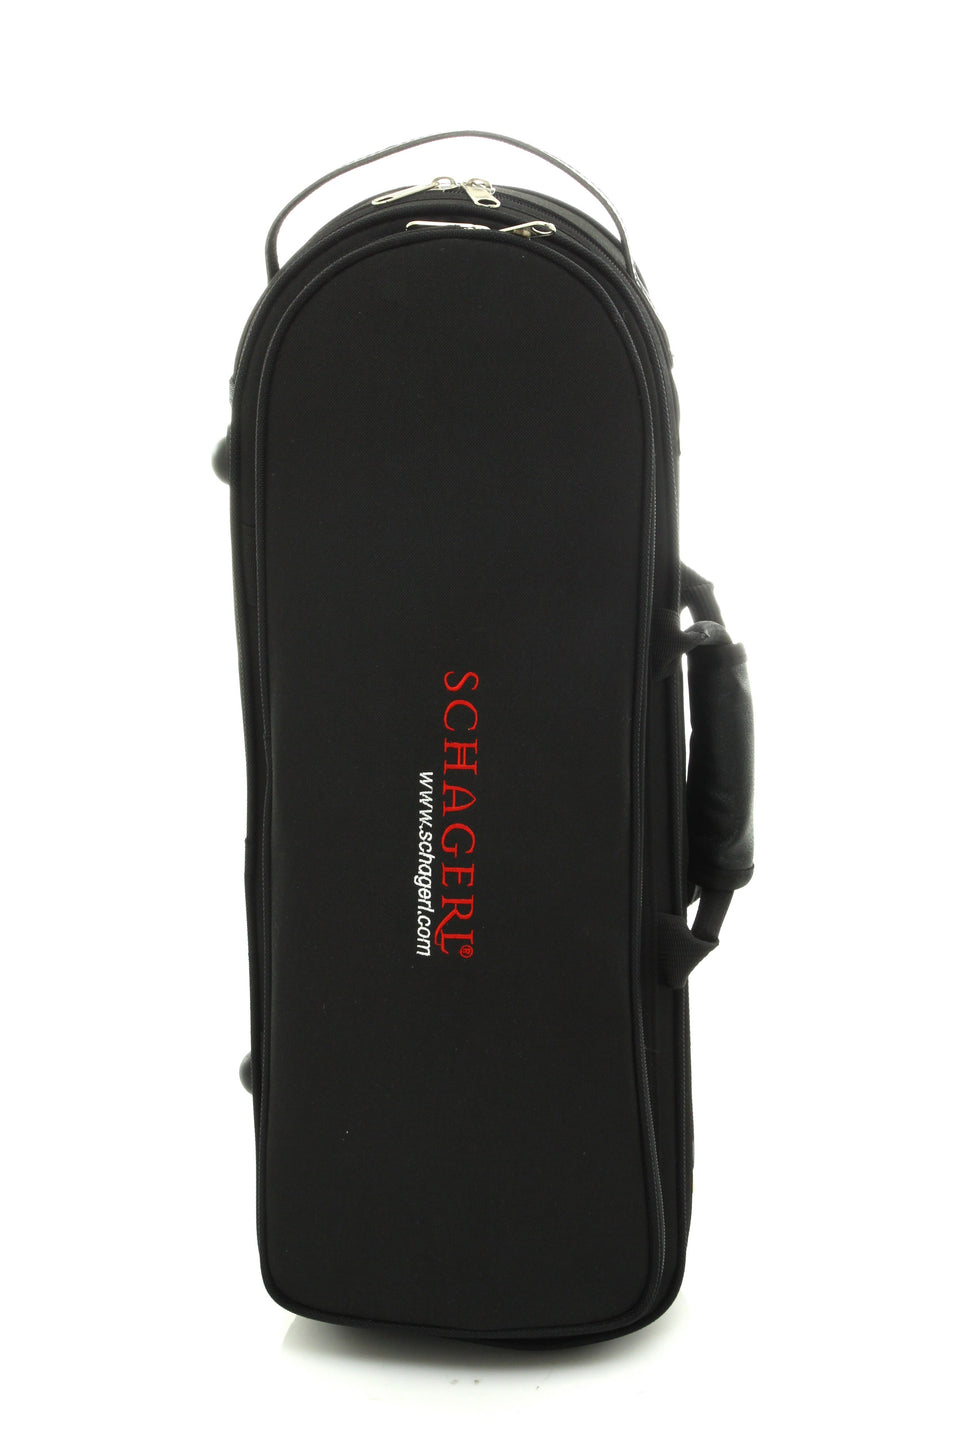 Schagerl Single Trumpet Case 144220